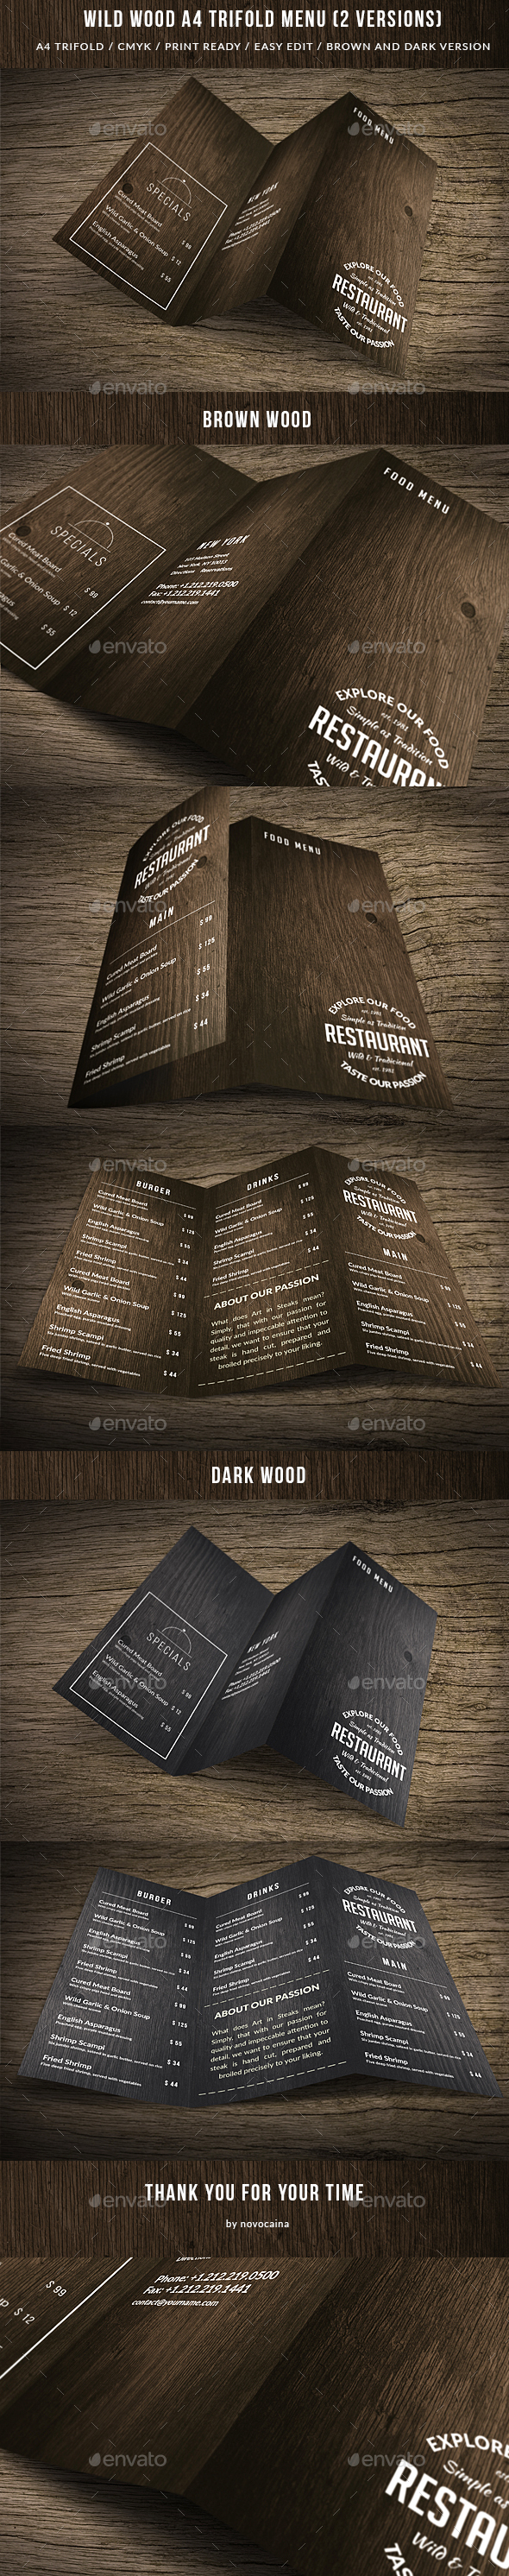 Wild Wood A4 TriFold Menu - 2 Versions - Food Menus Print Templates